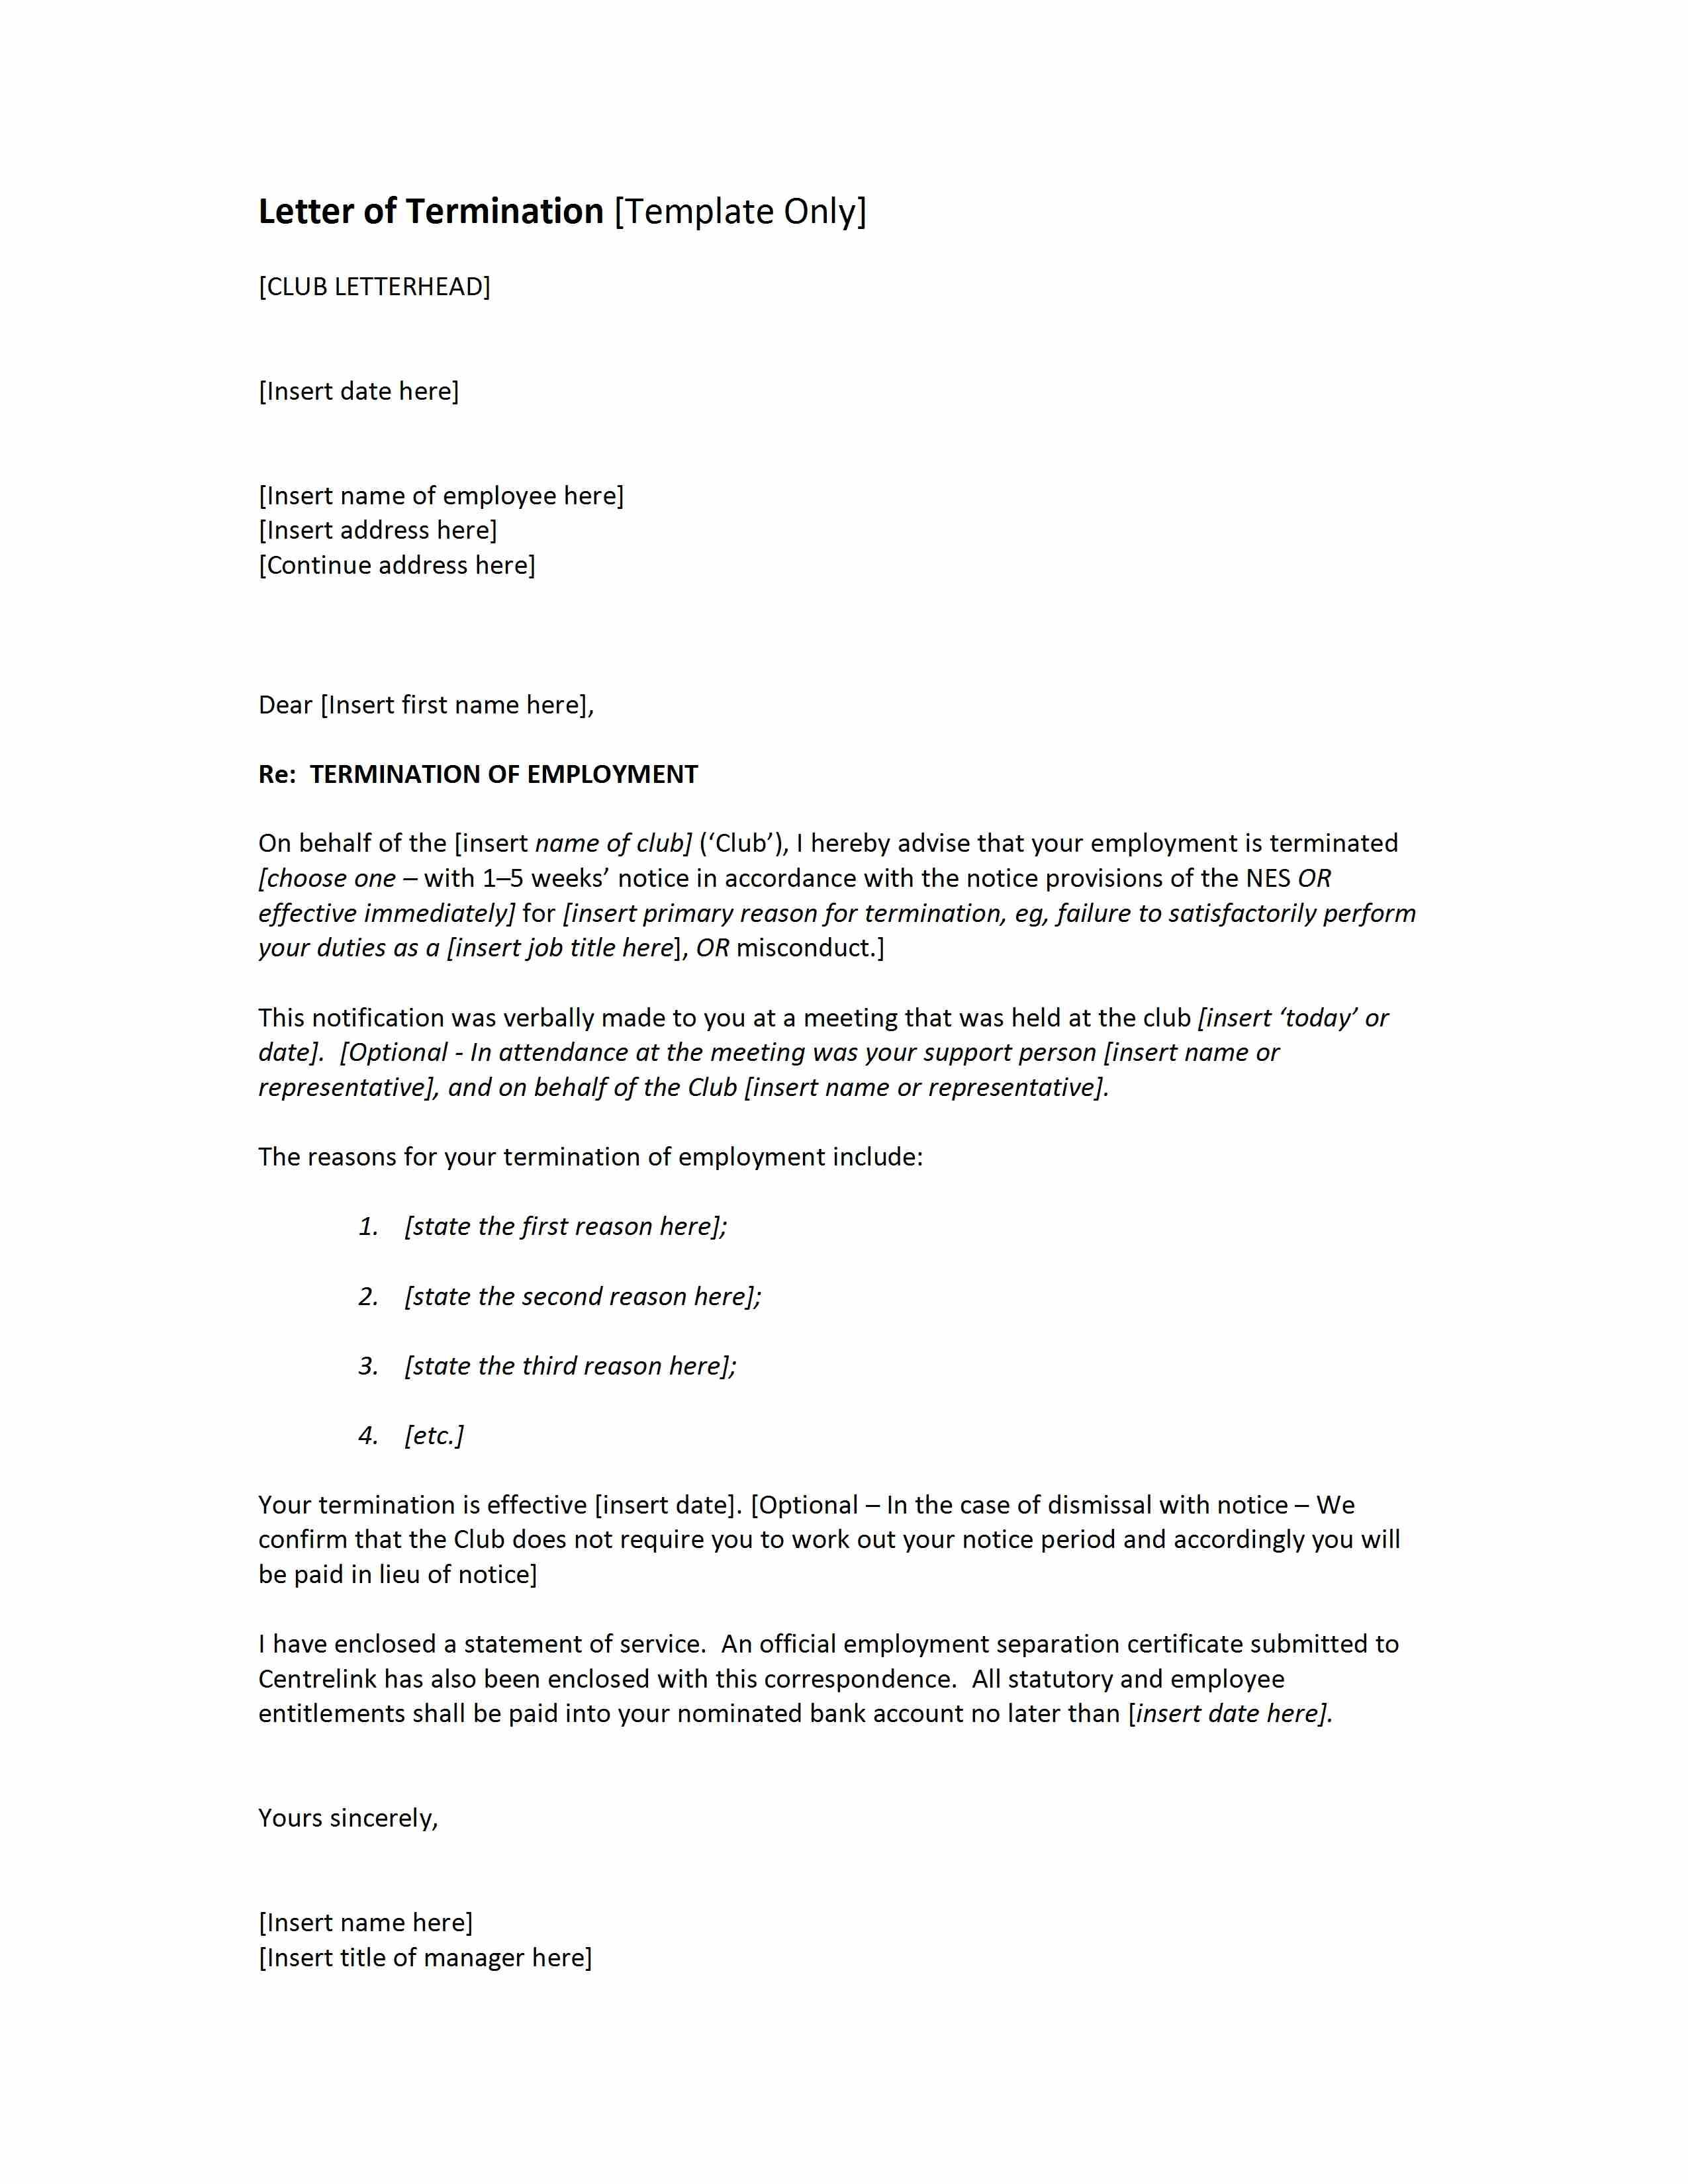 Example Of Termination Letter To Employee Classy Contract Termination Letter Free Microsoft Word Templates Create .